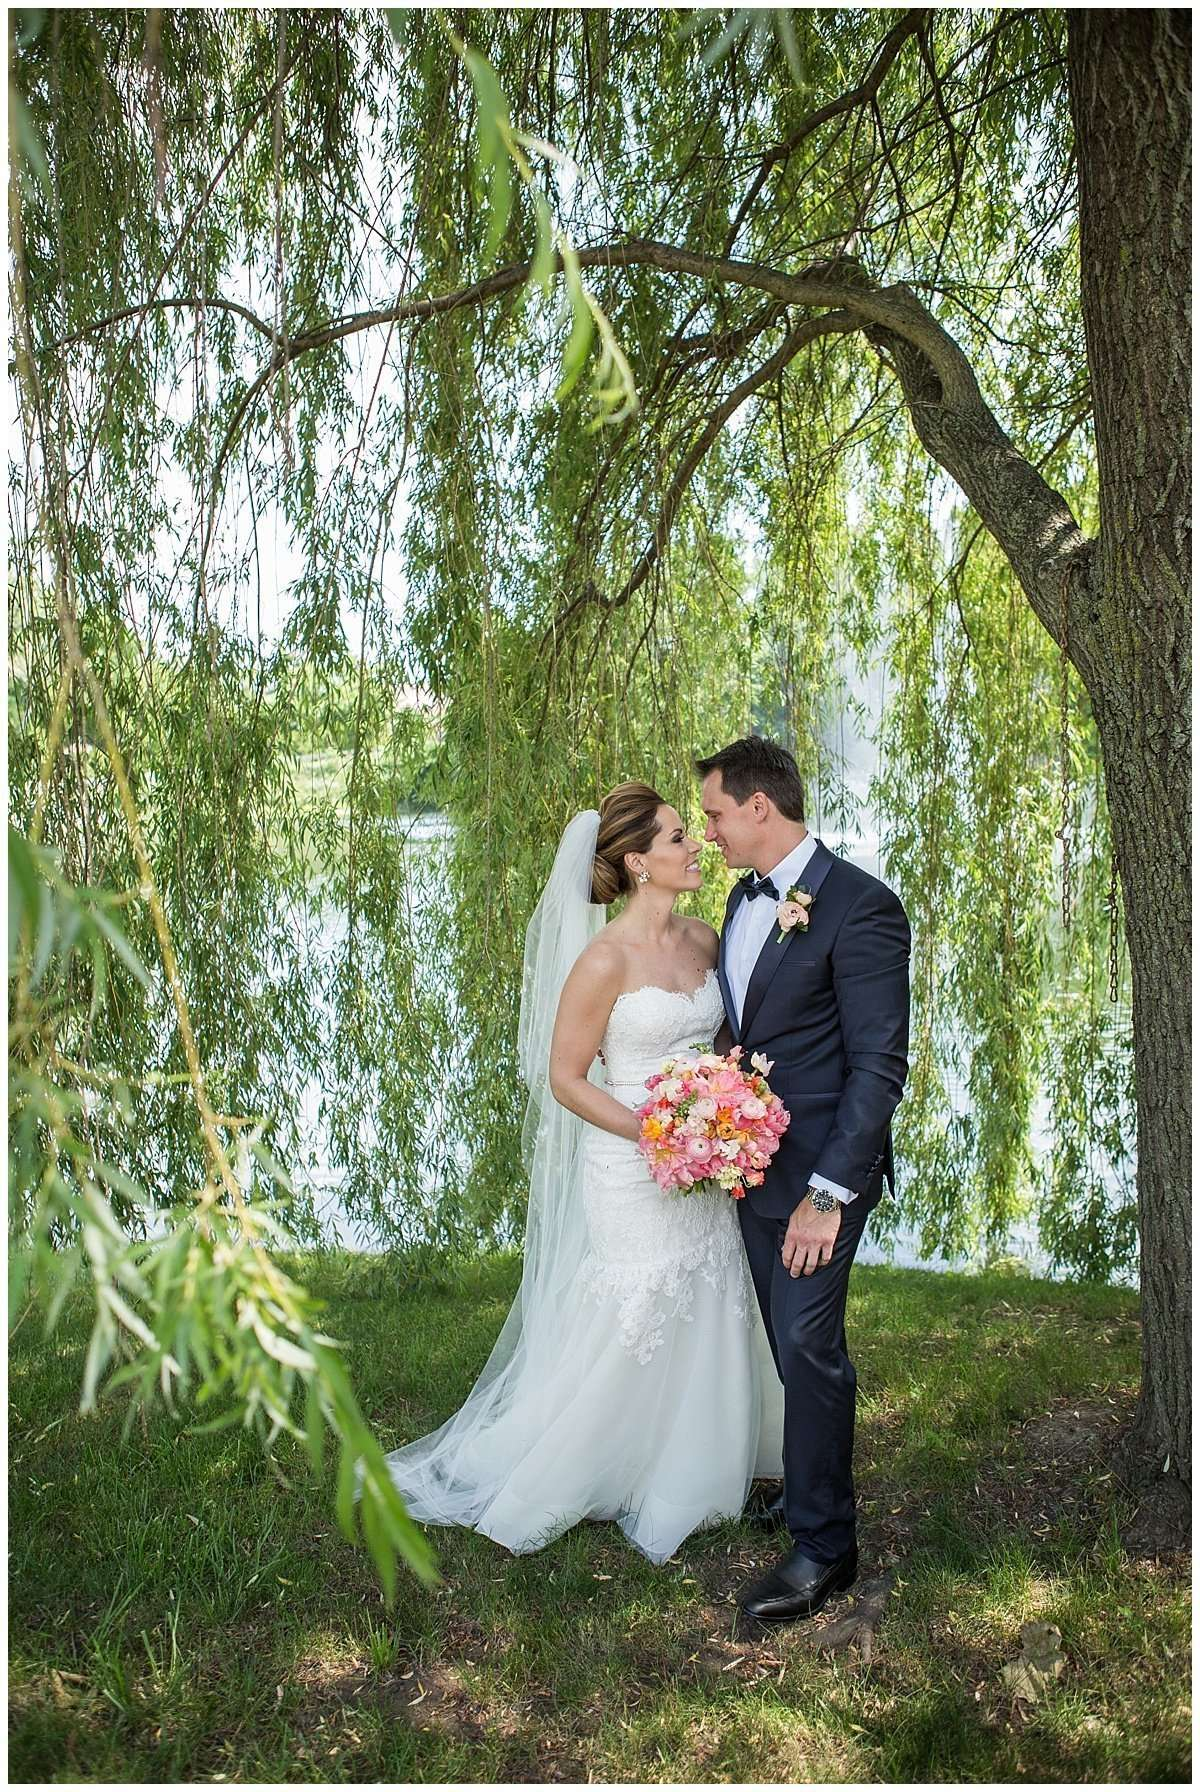 Kim & Lee | A Summer Wedding at Brookside Country Club 56